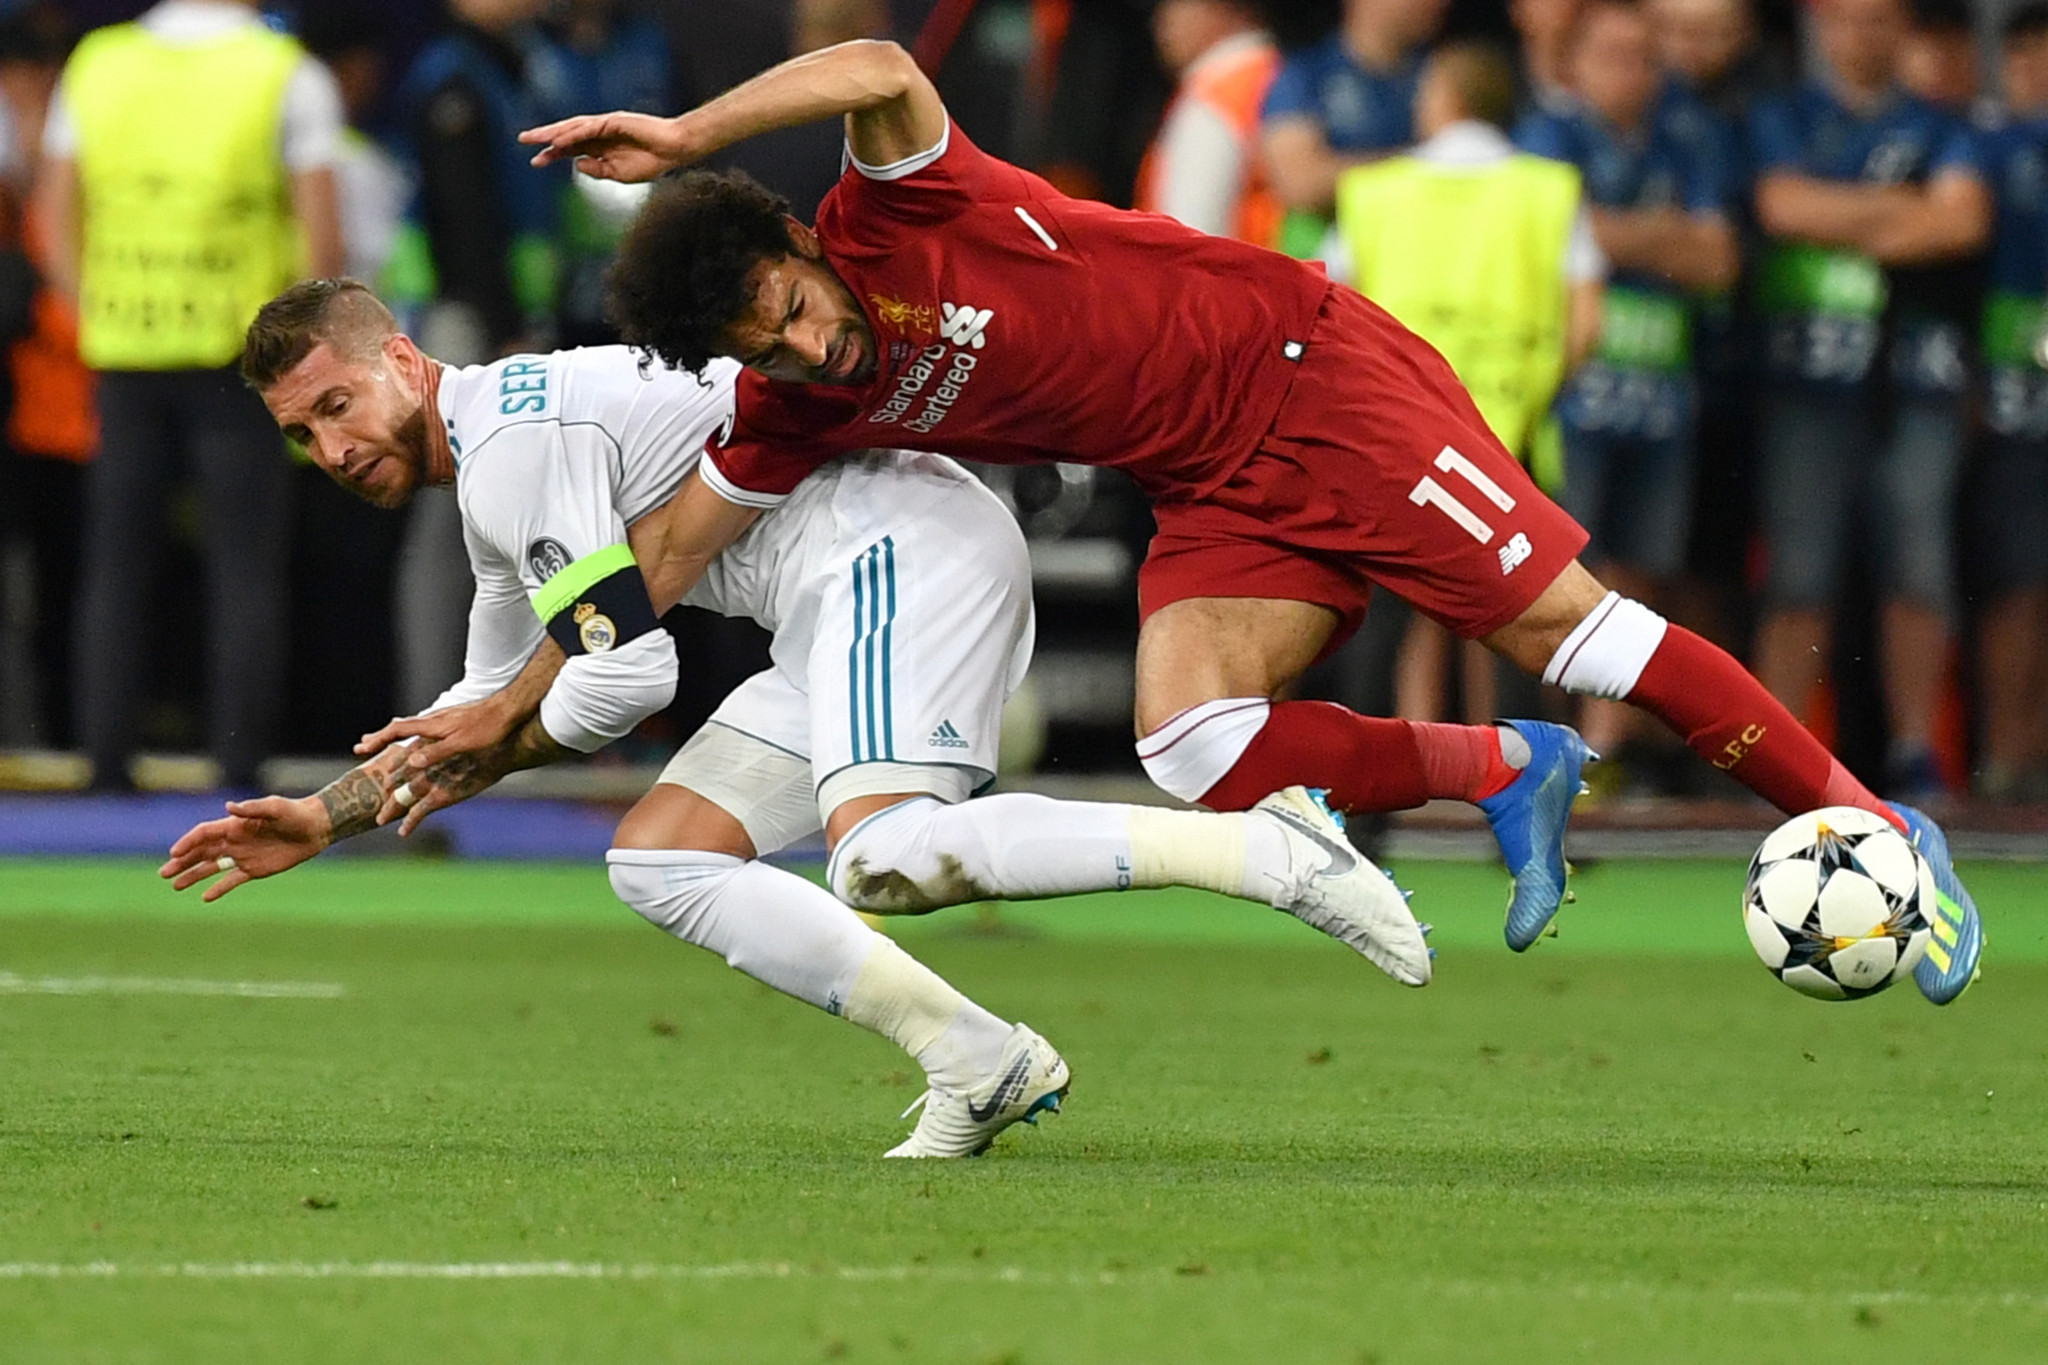 Sergio Ramos reportedly said Mohamed Salah could have continued playing in the Champions League final had he had an injection ©Getty Images